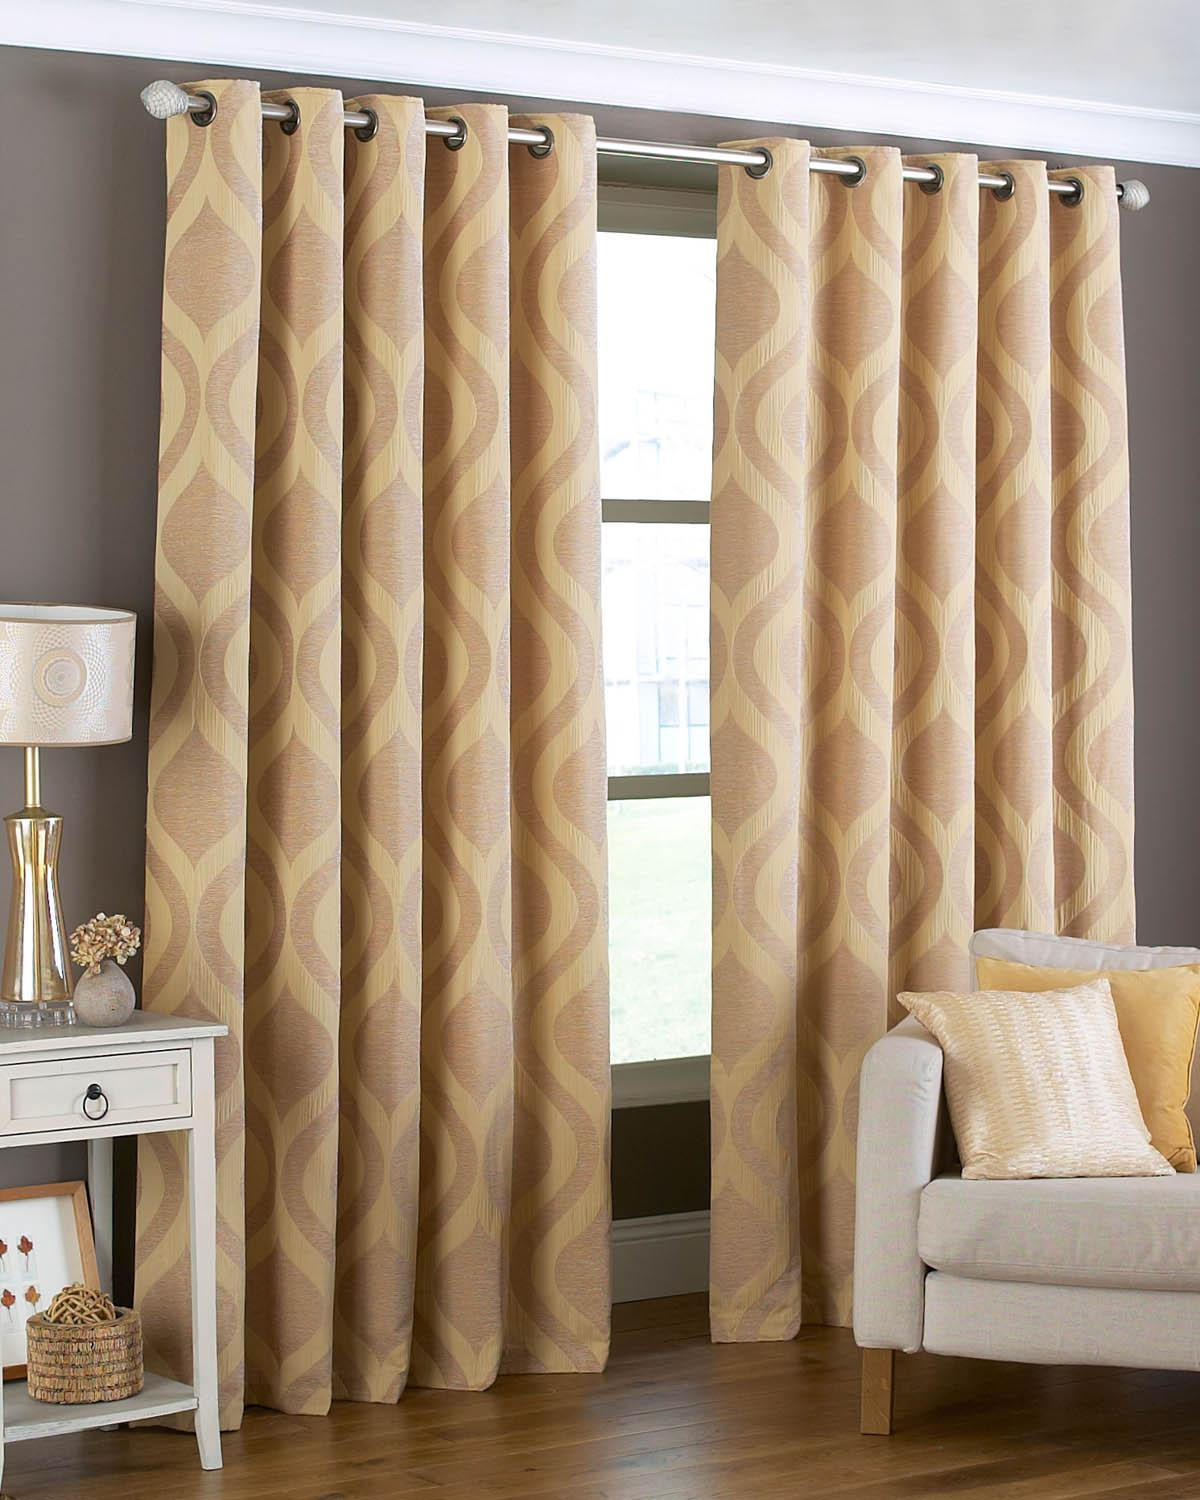 Gold curtains living room - Arch Ready Made Eyelet Curtains